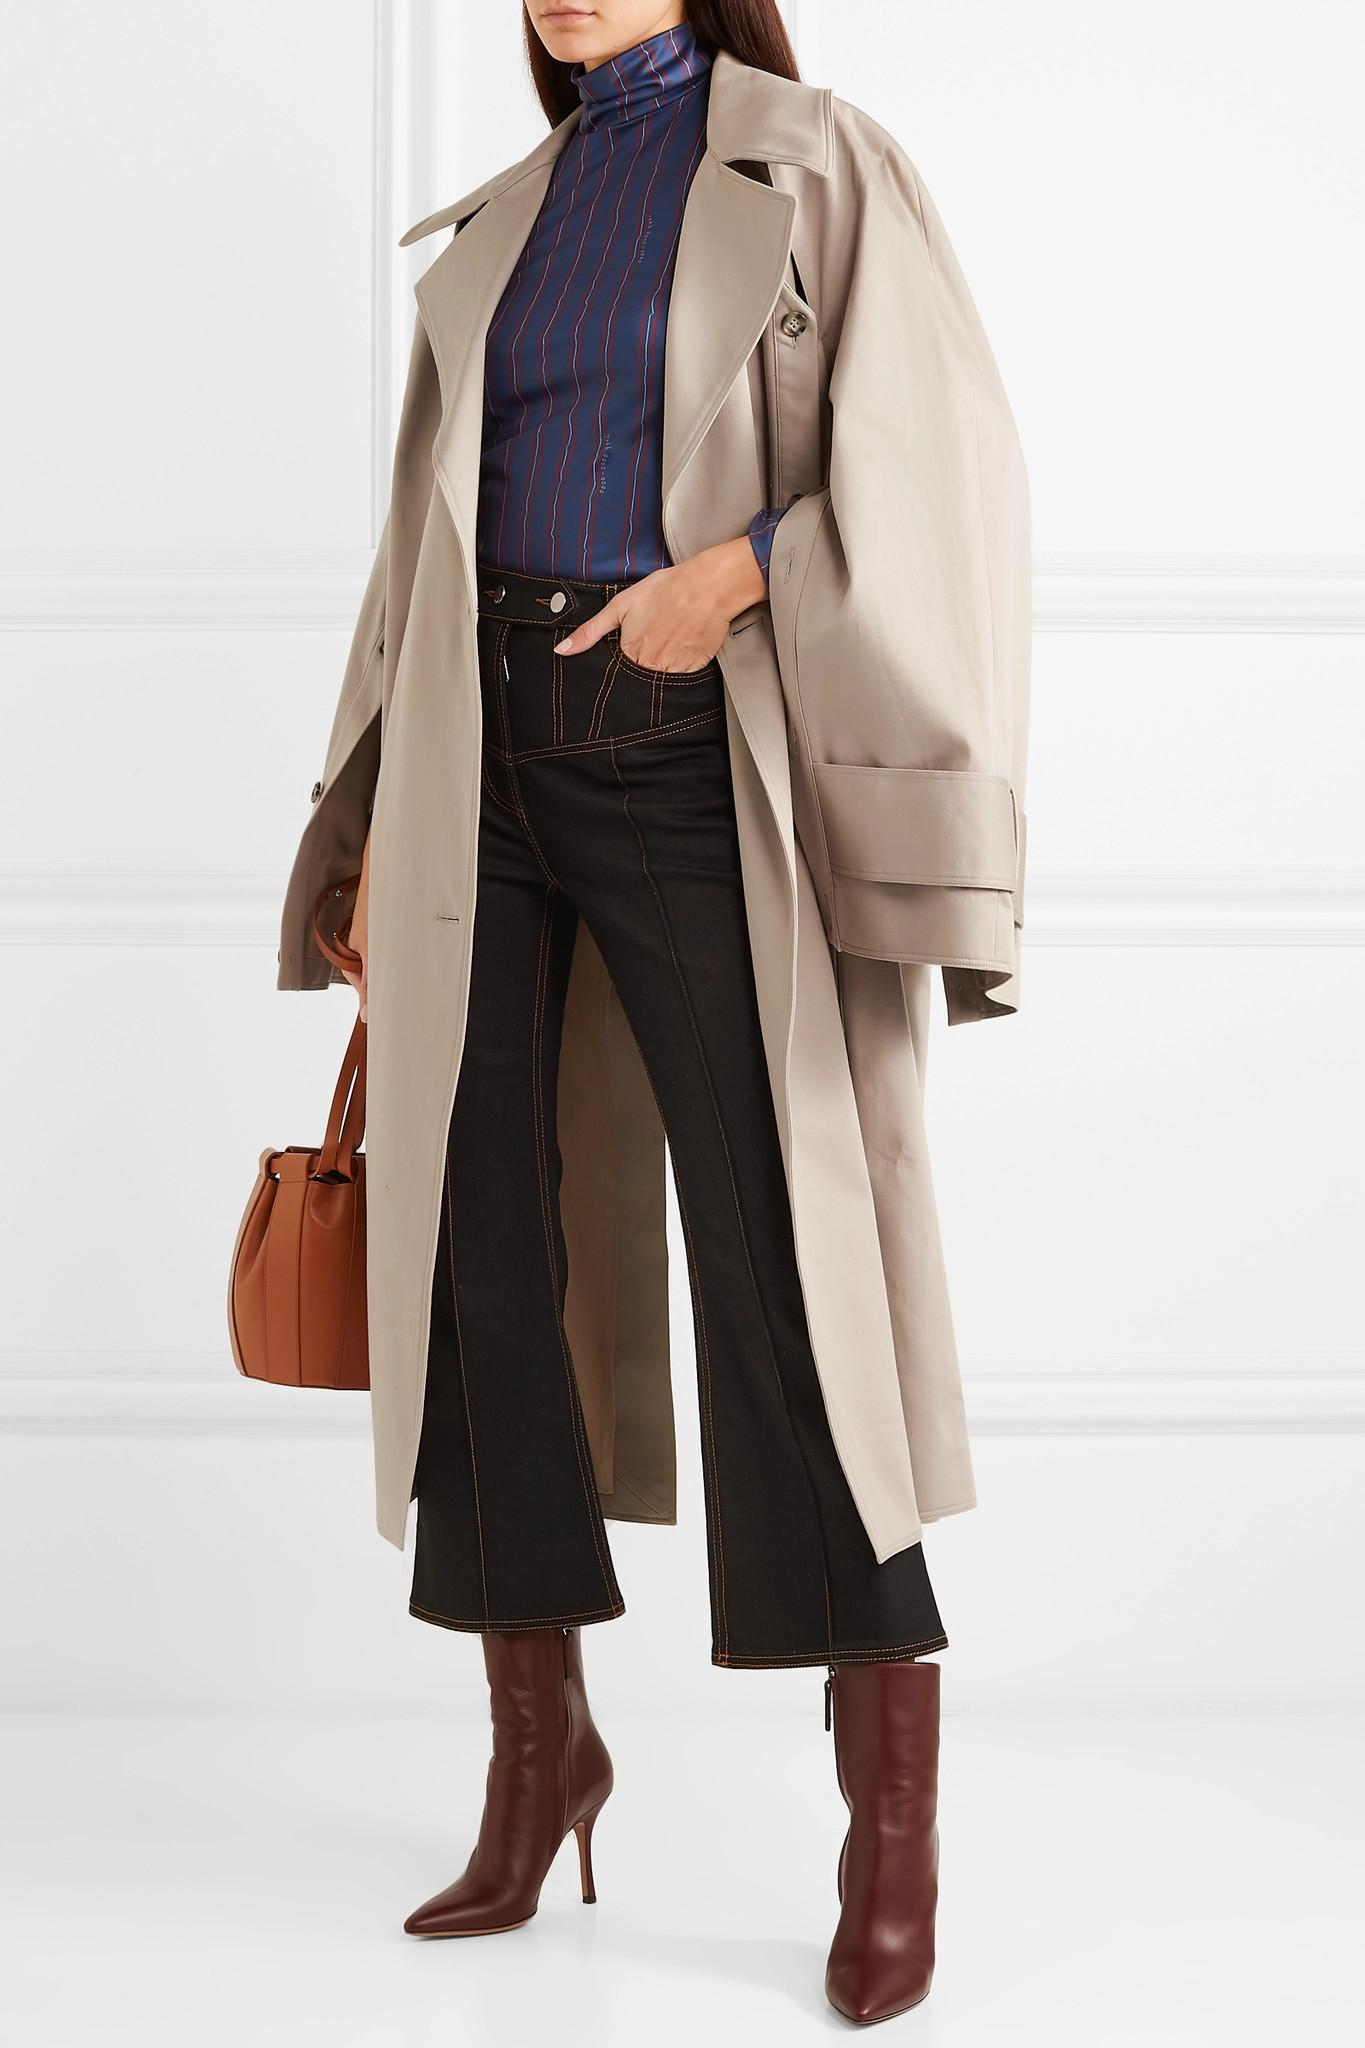 Coat Convertible Oversized ROKH gabardine Cotton in Natural Trench aOngqT